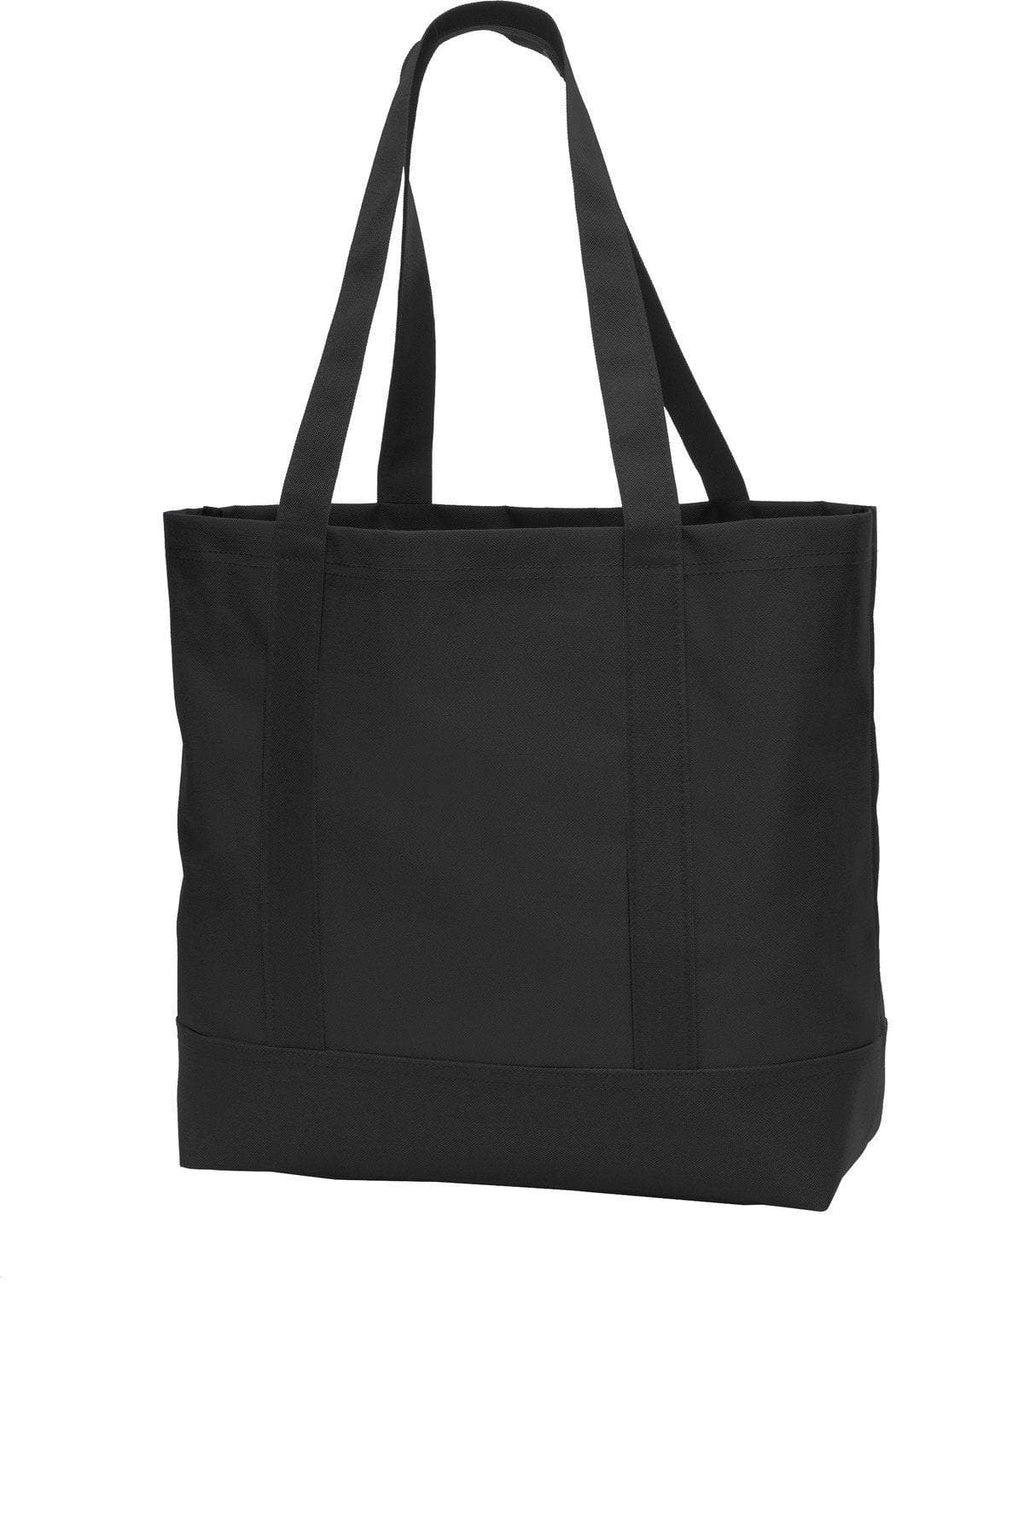 BAGANDTOTE CANVAS TOTE BAG BLACK Day Polyester Canvas Tote bag